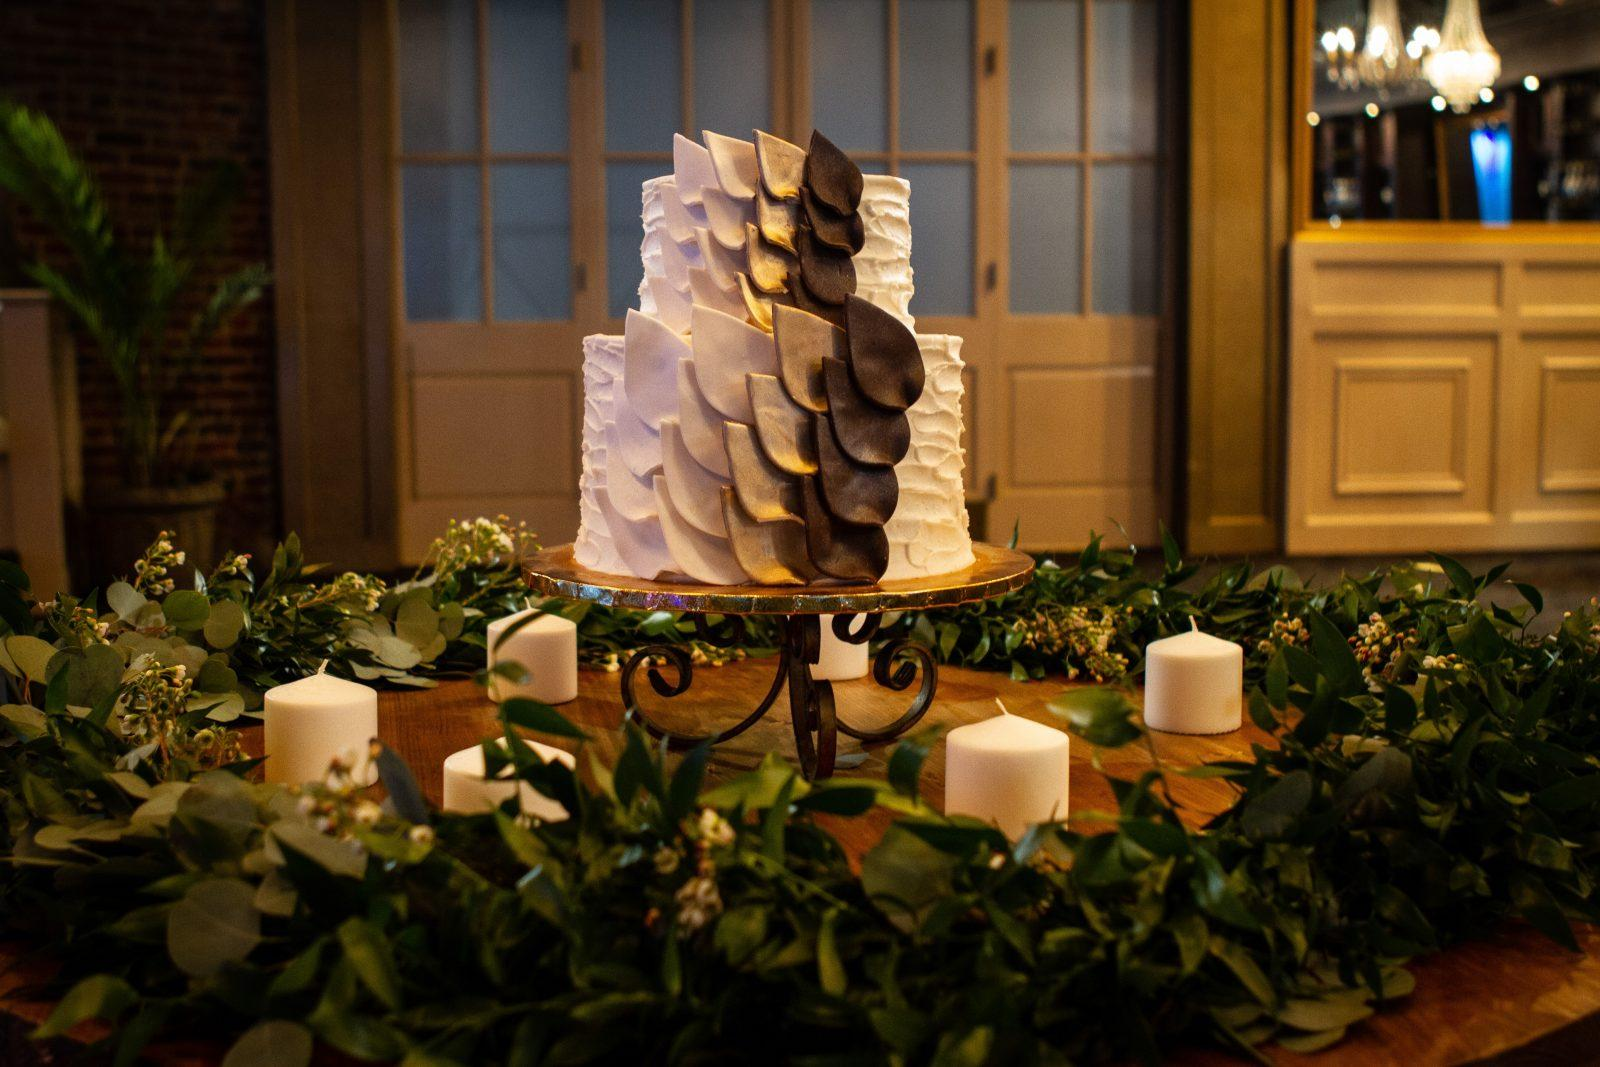 Gambino's Bakery wedding cake: Photo: Jessica The Photographer